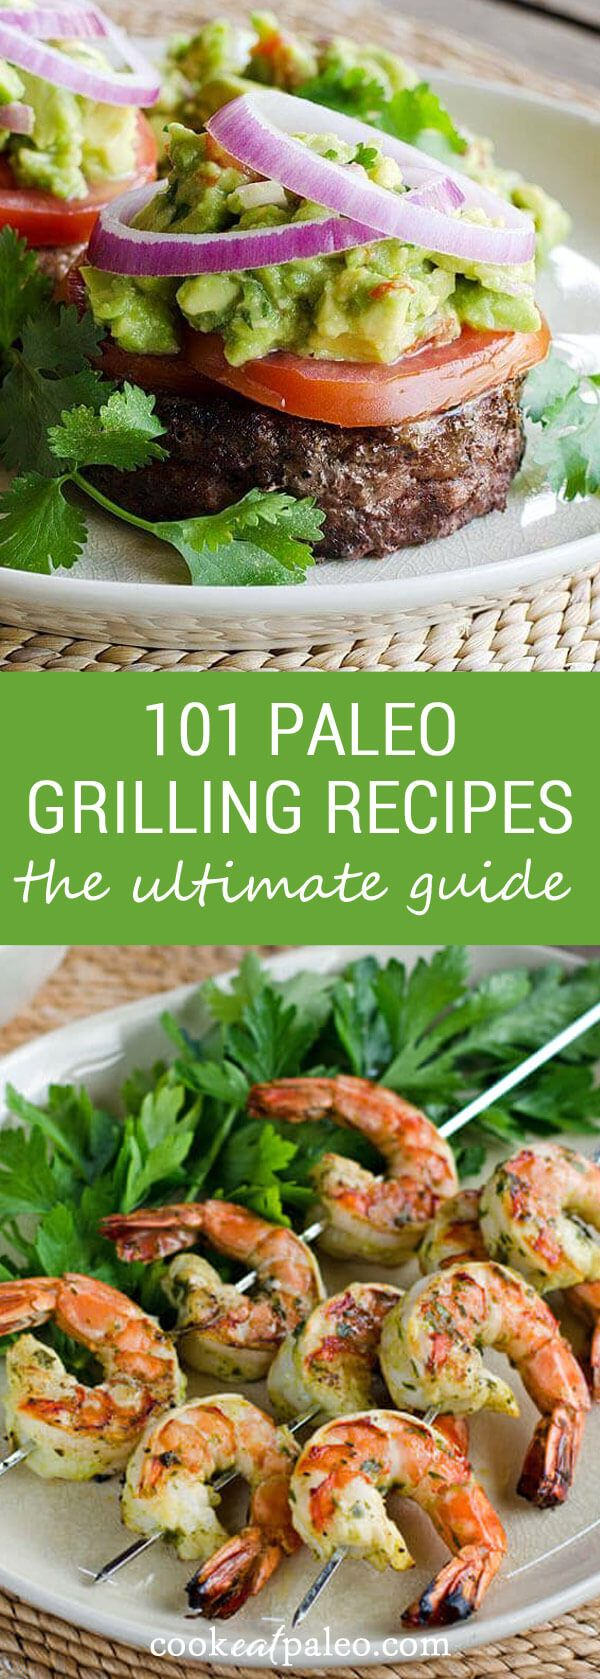 101 ultimate paleo grilling recipes for easy summer meals